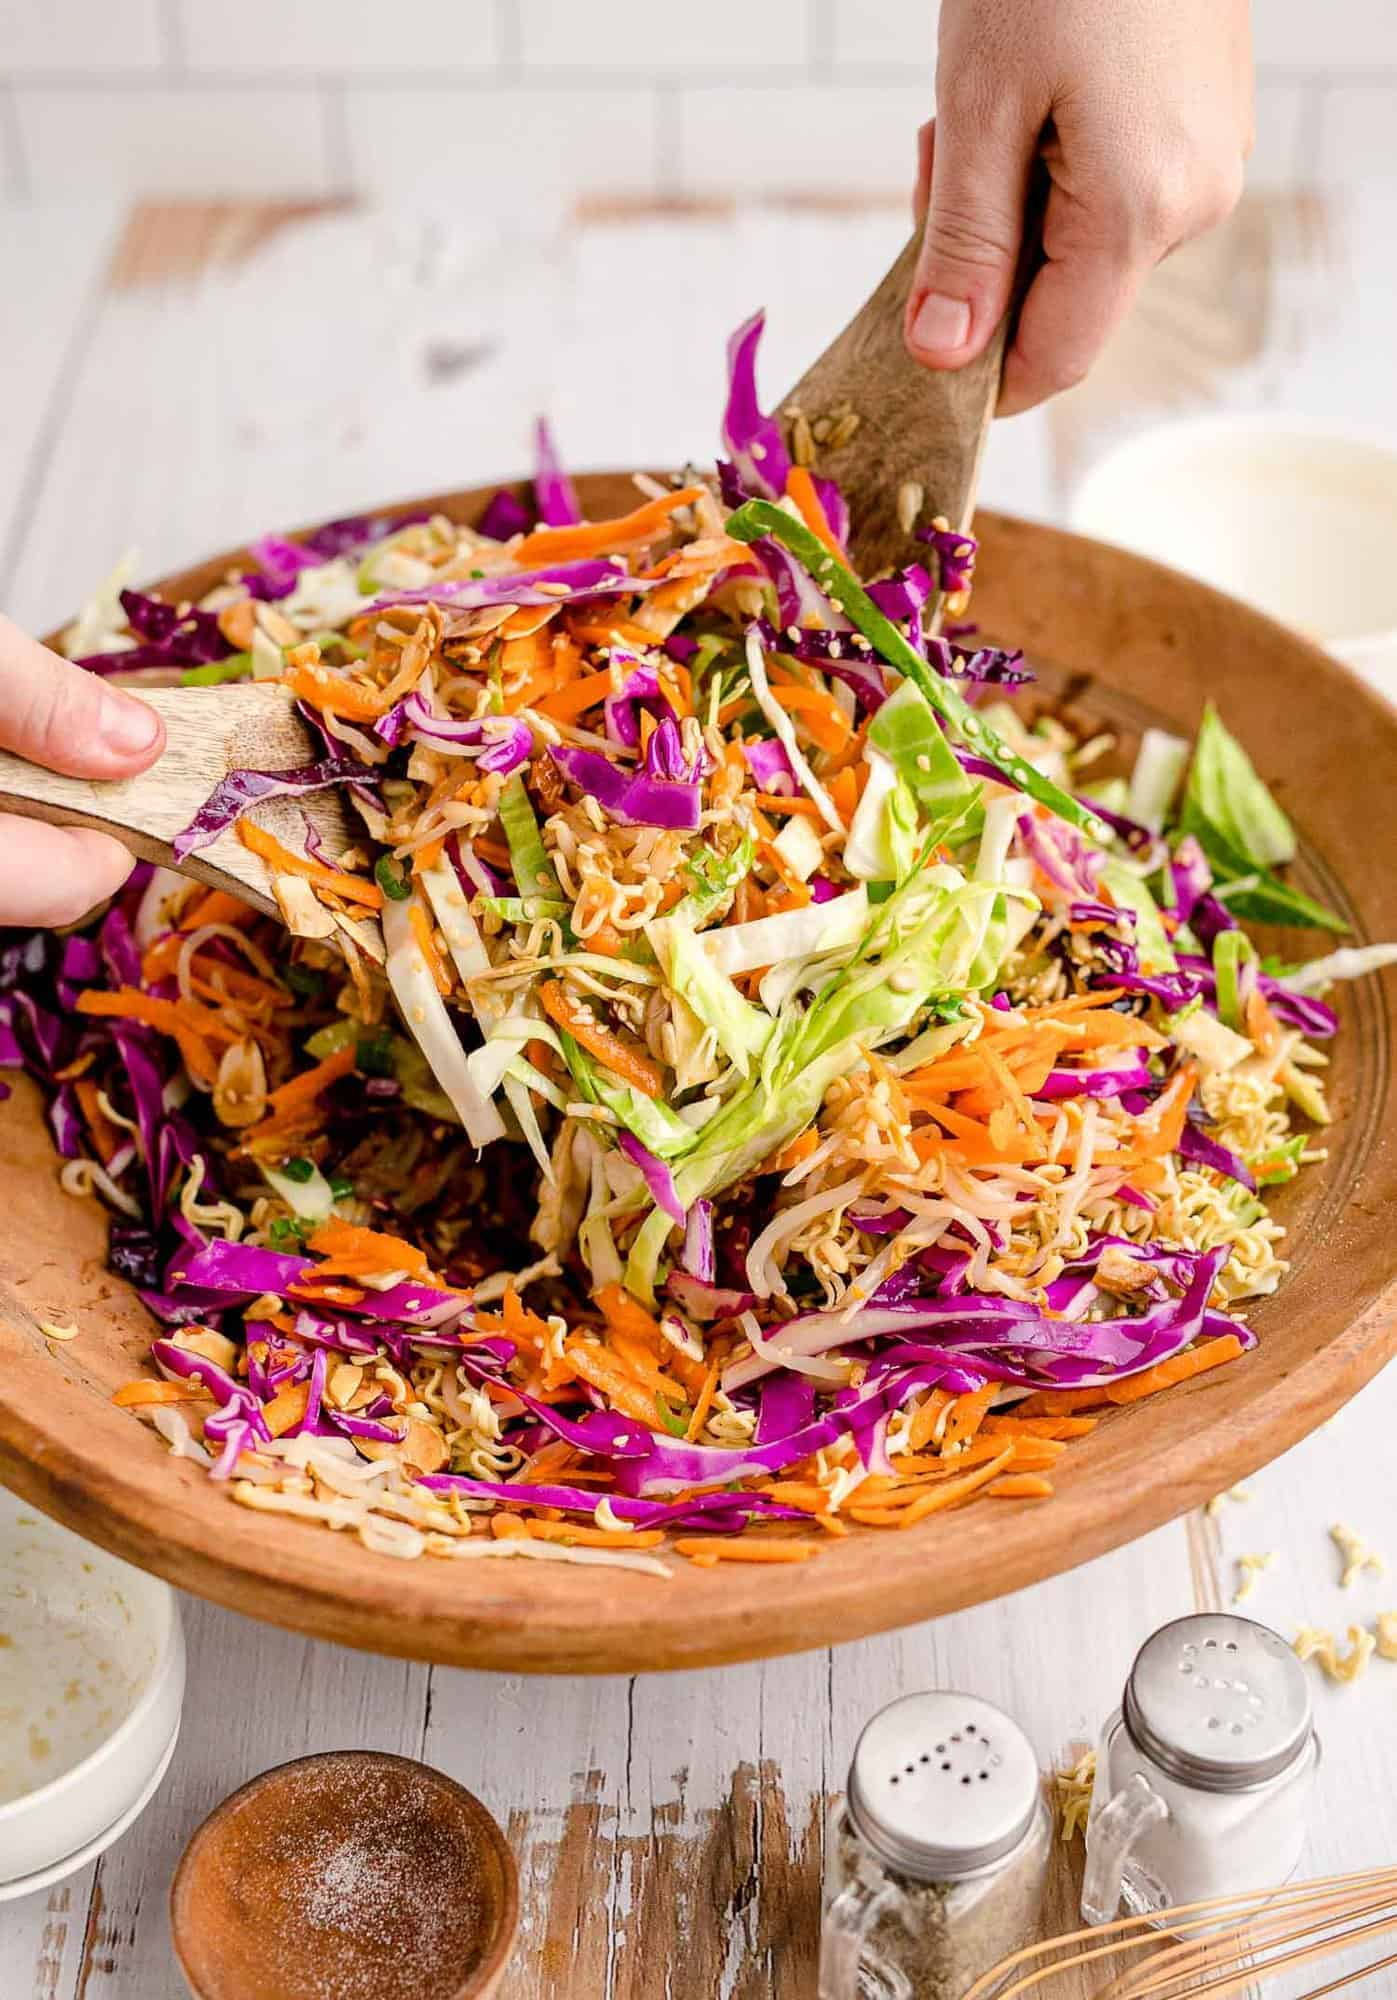 Large salad in a wooden bowl being tossed with handheld salad tongs.